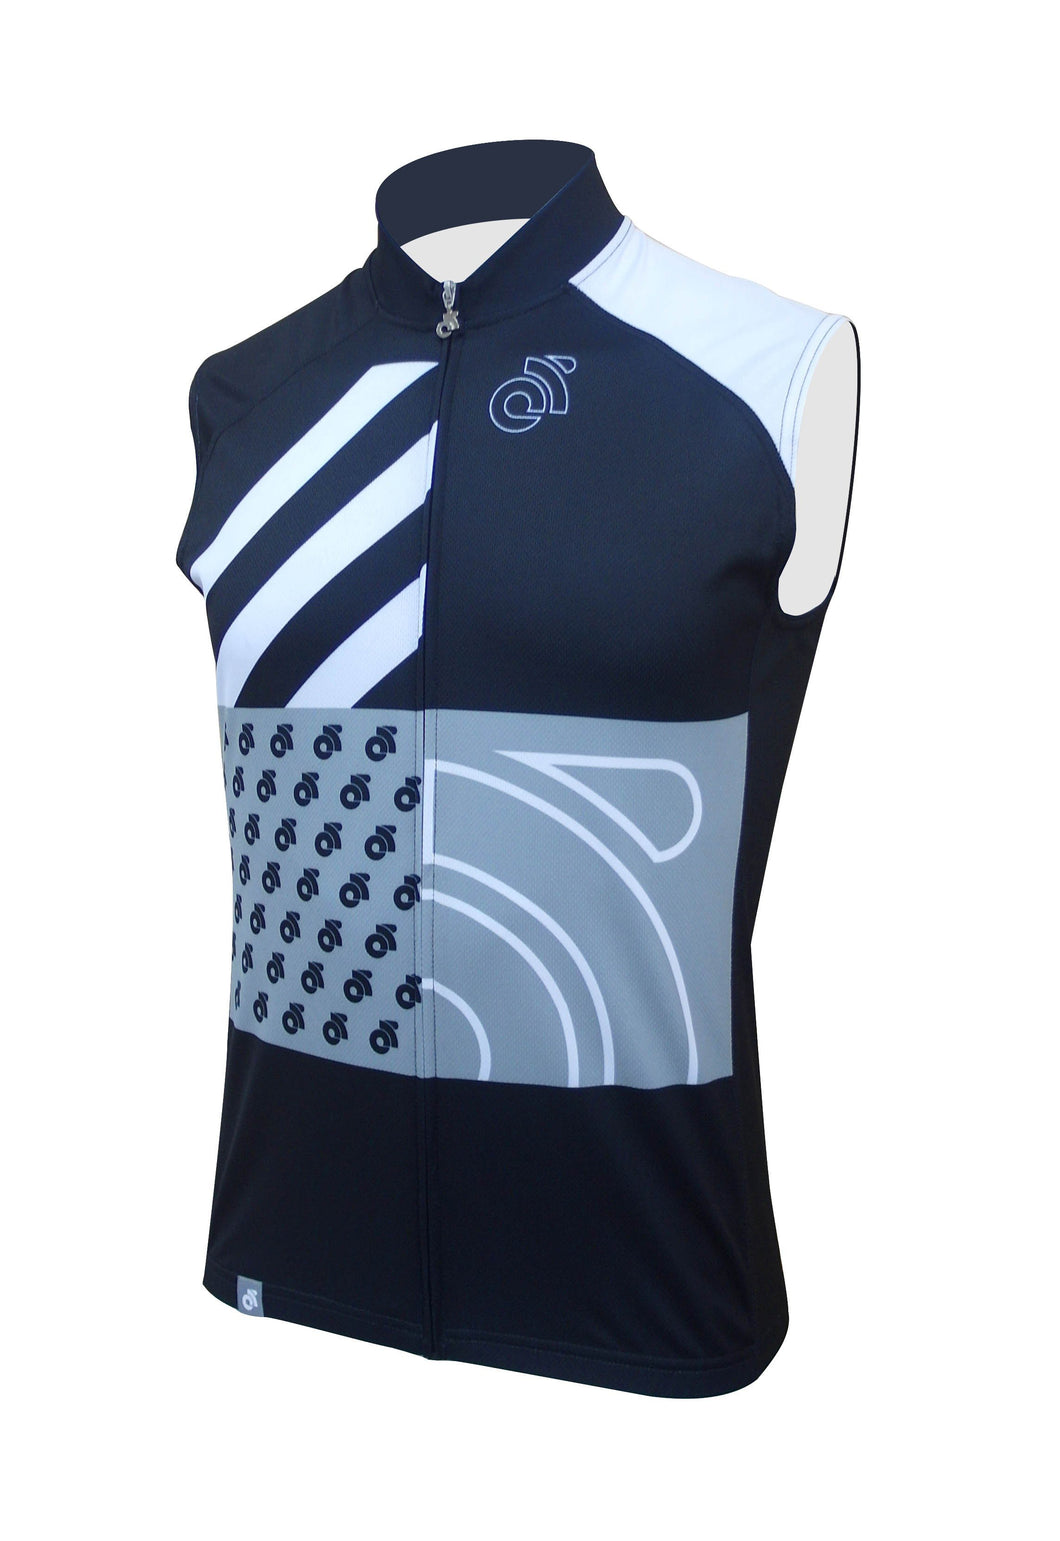 Tech Pro Sleeveless Jersey